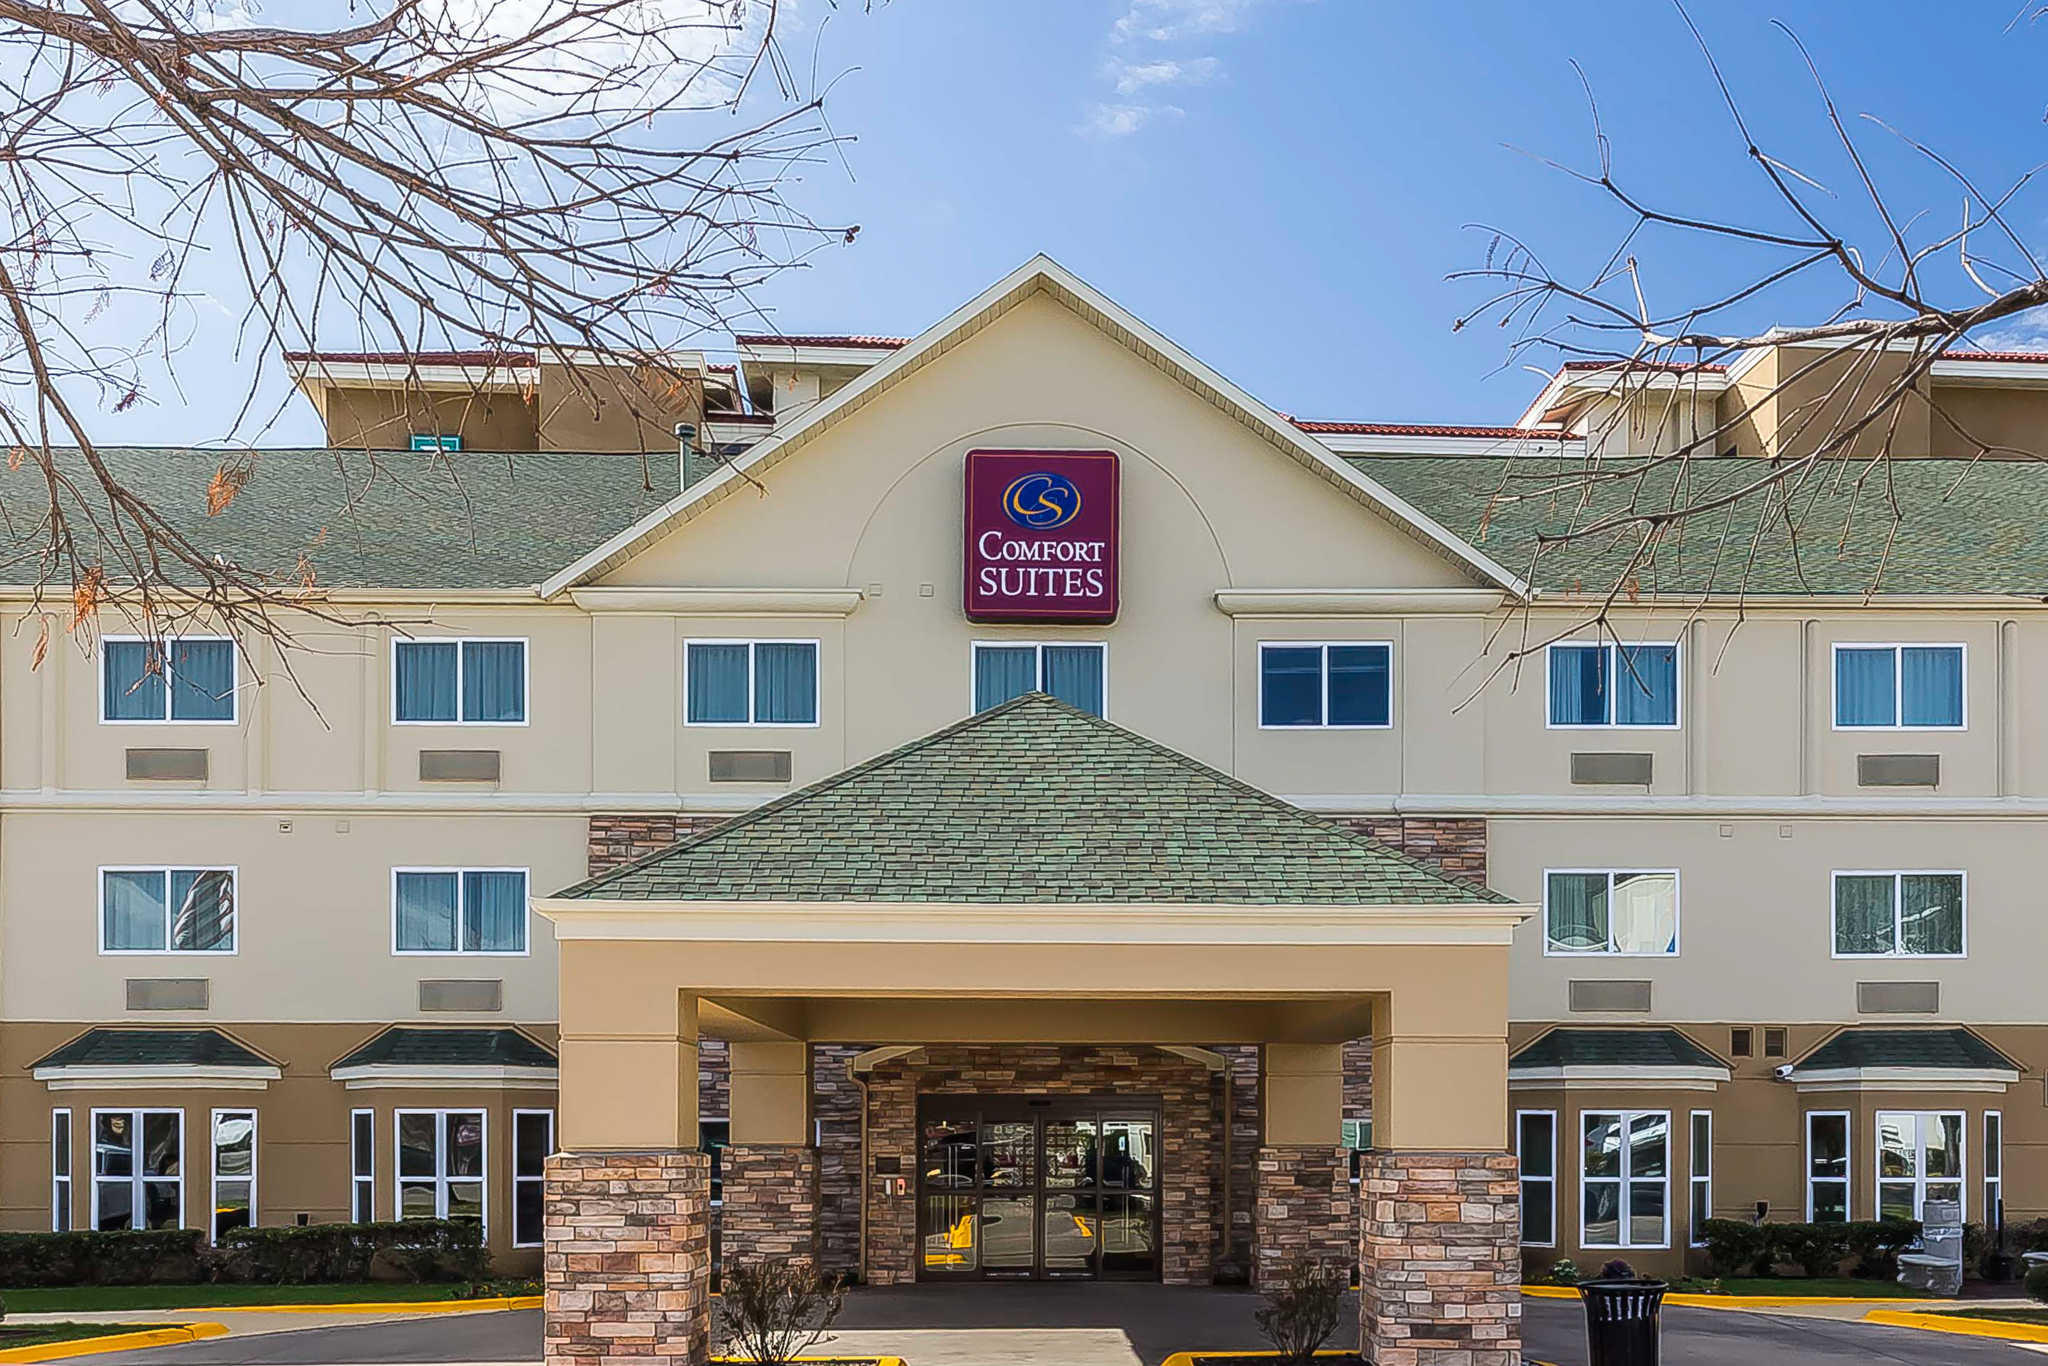 image of the Comfort Suites North Dallas